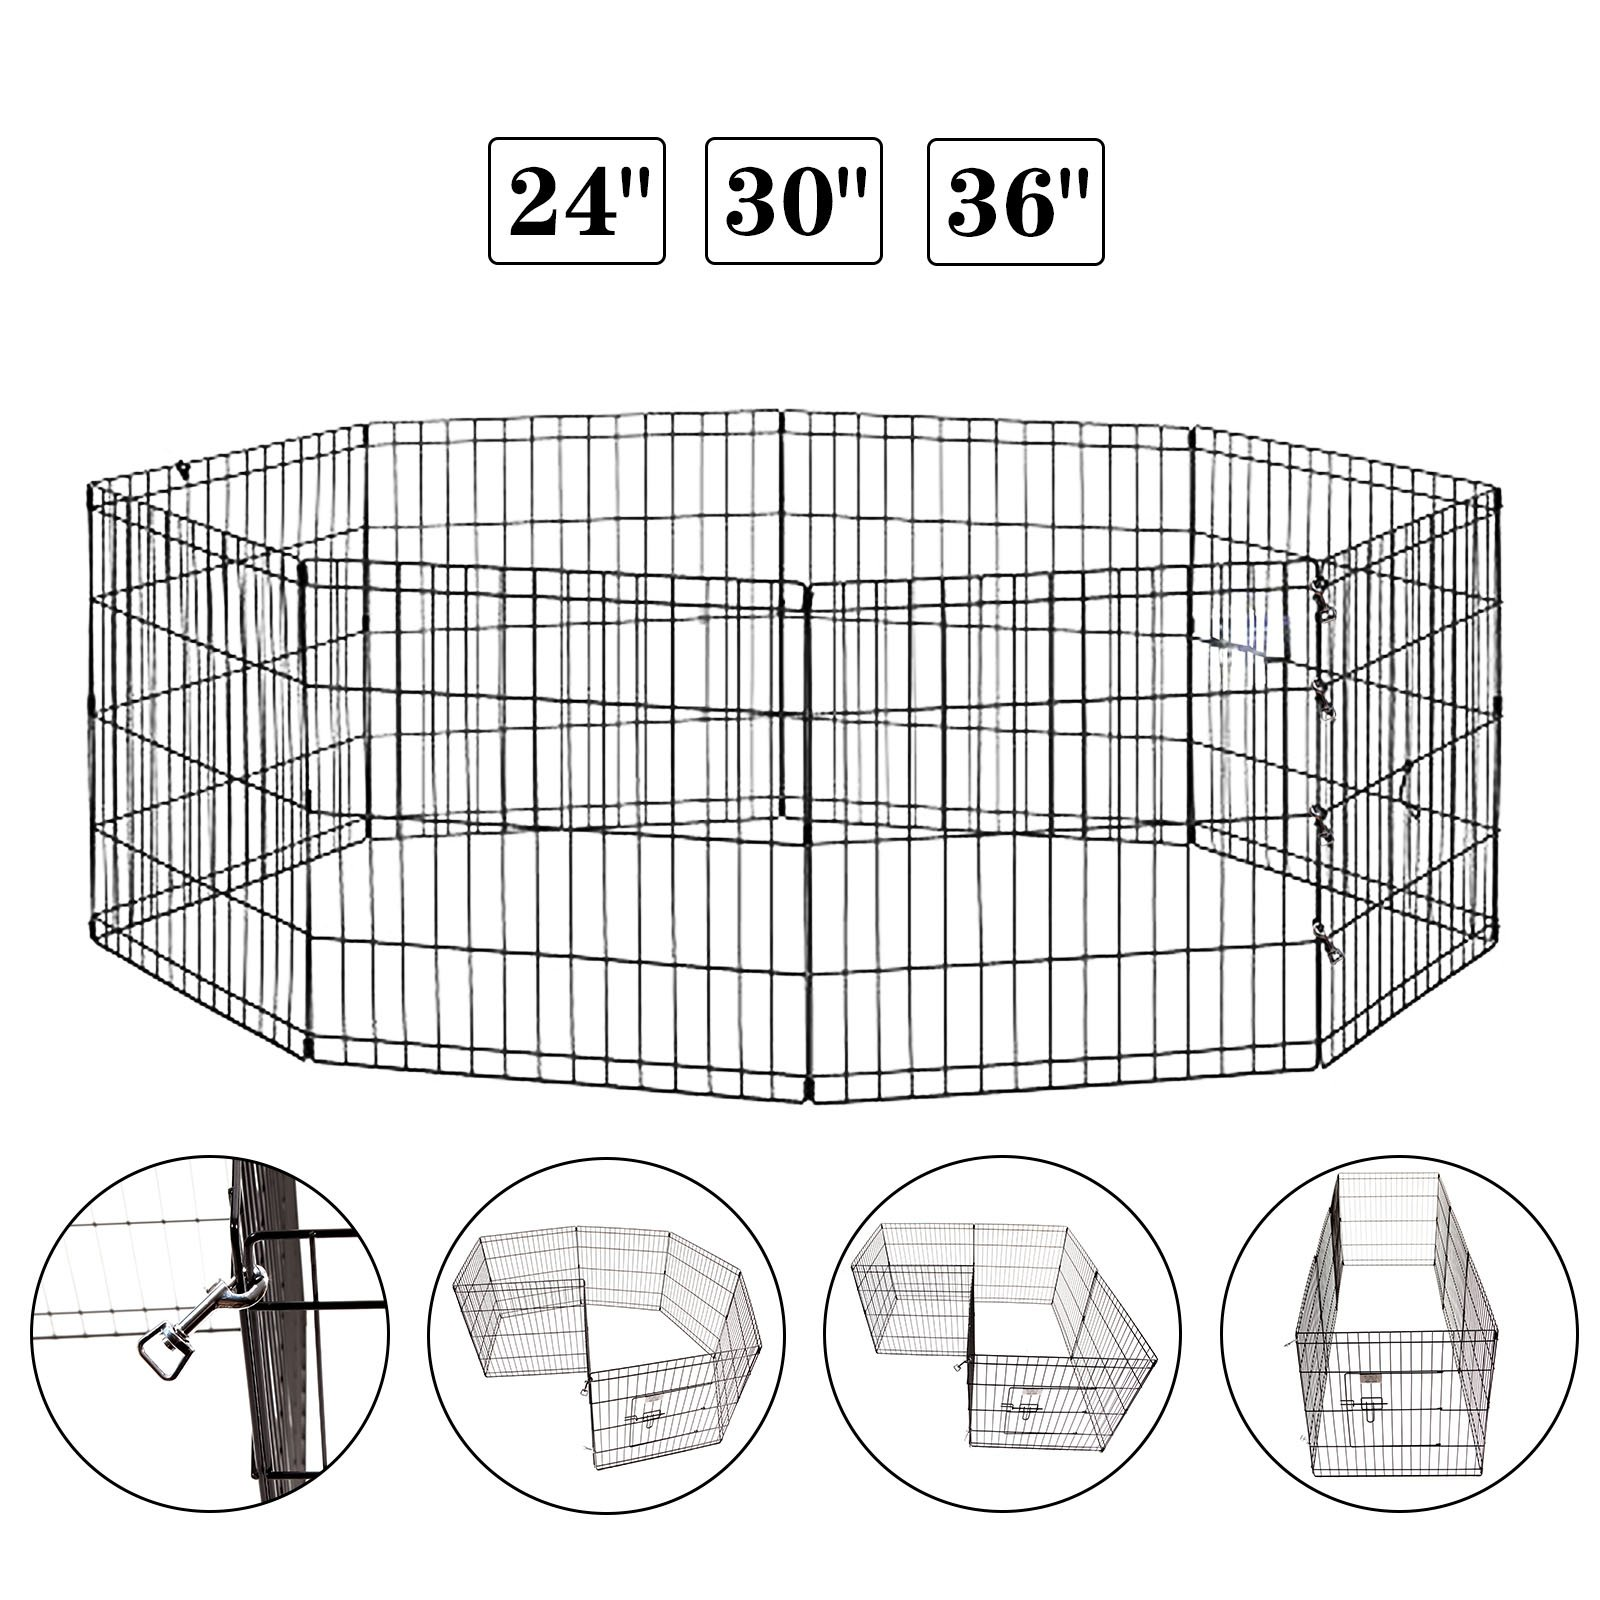 Idealchoiceproduct Pet Playpen Pet Pen Folding Wire Dog Exercise Pen Pet Fence Yard Fence 8 Panel Cage 24-42 Inch-Black Color